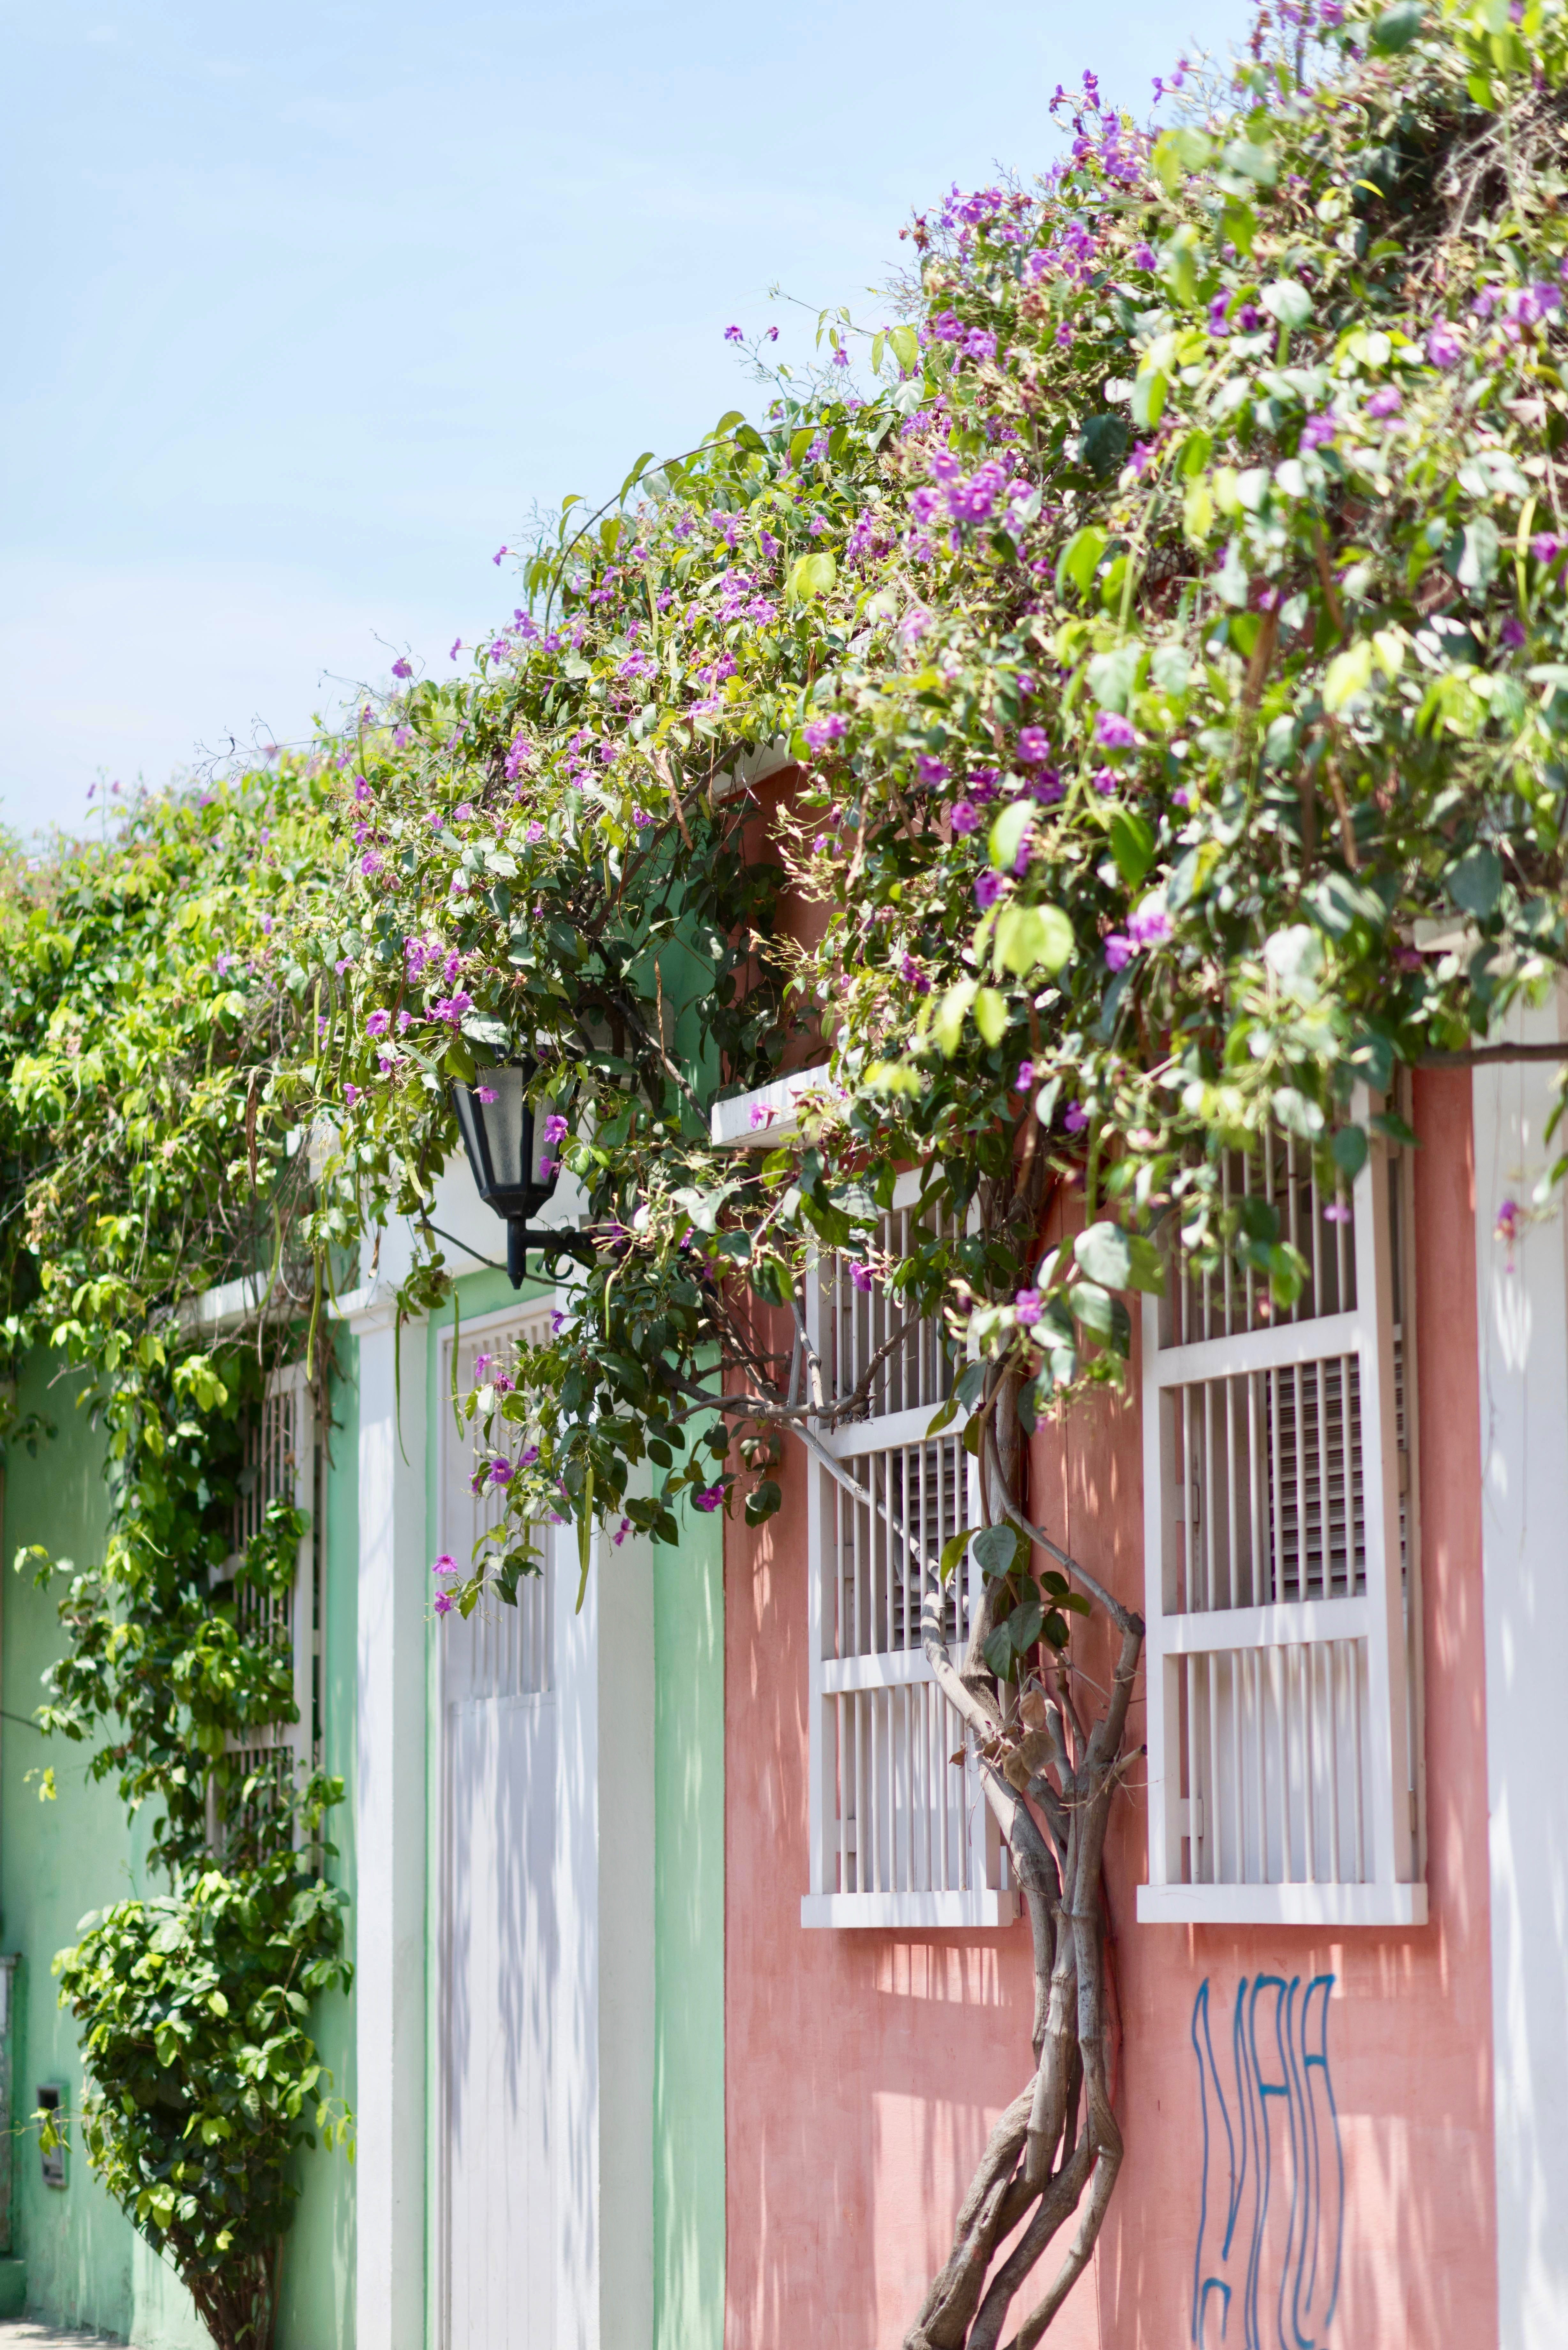 Bright flowers in Cartagena